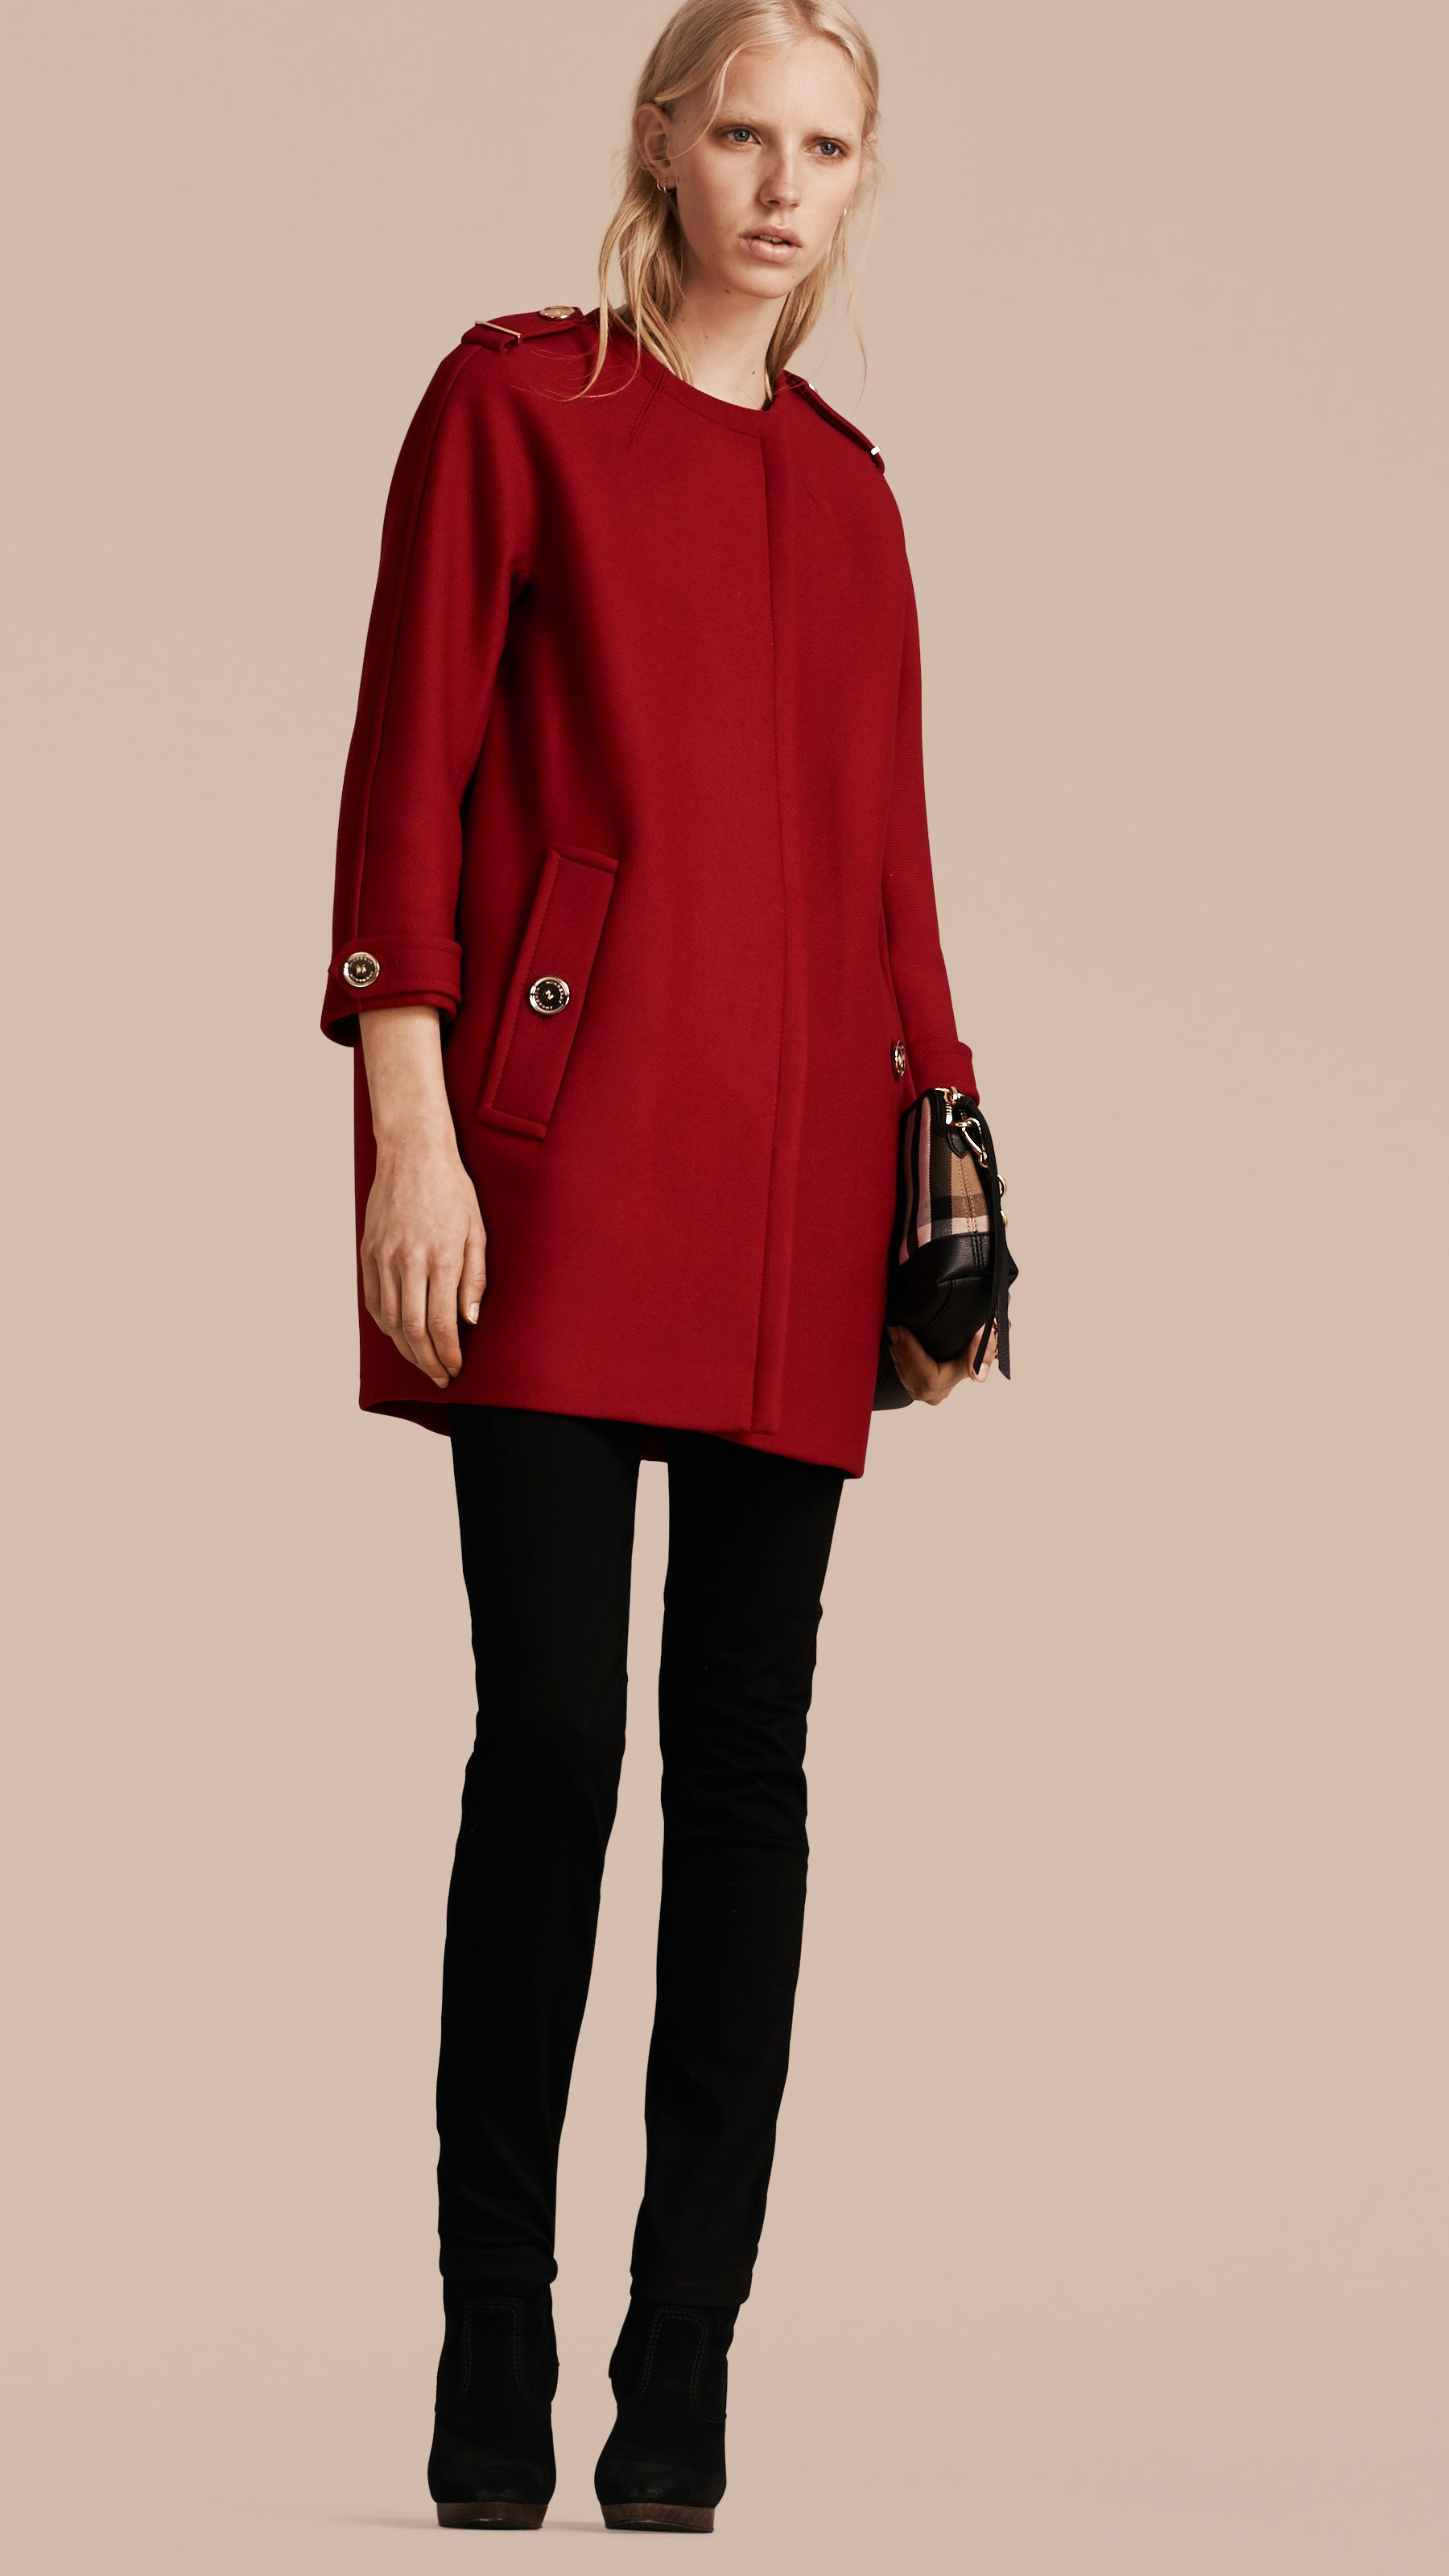 Technical Wool Cashmere Collarless Coat in Parade Red | Coats ...